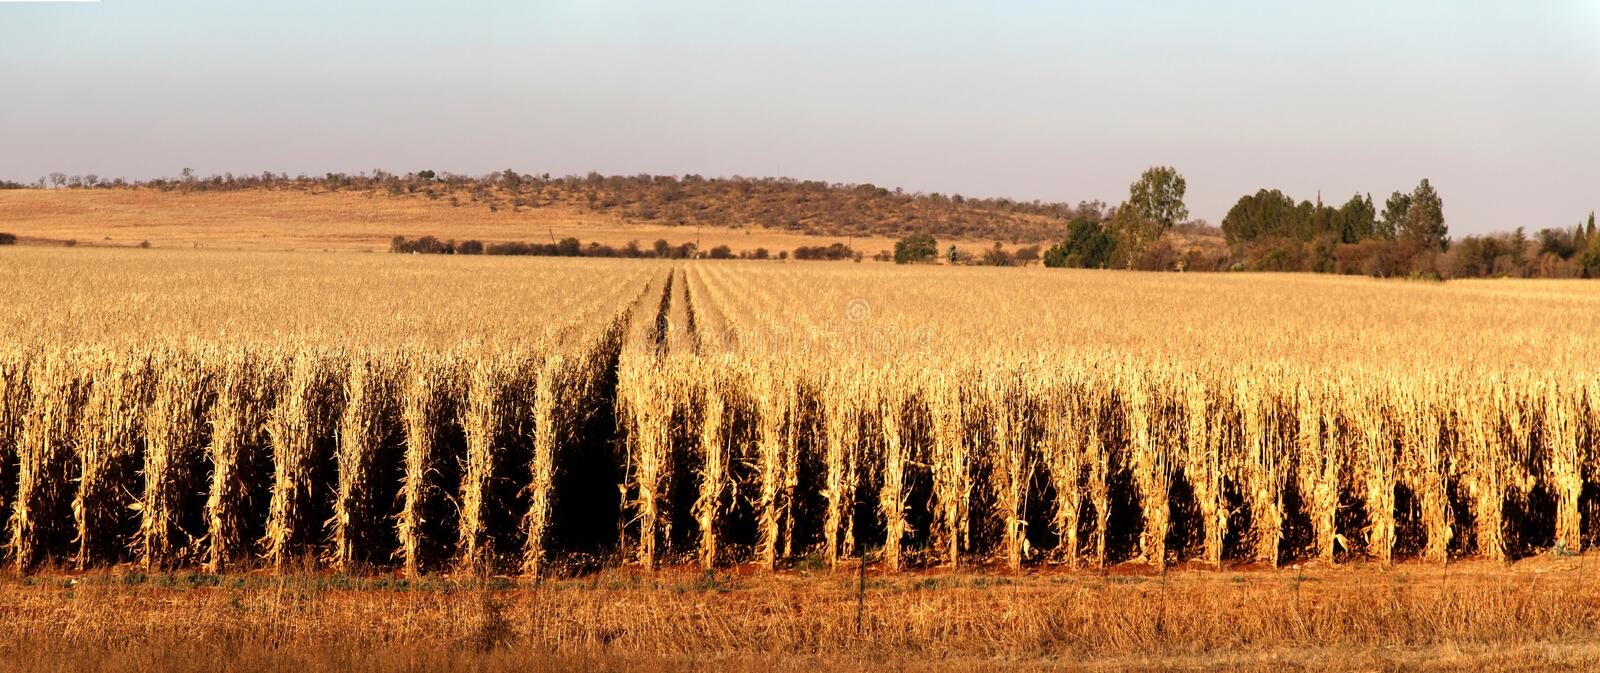 Farm in Potchefstroom, South Africa royalty free stock image